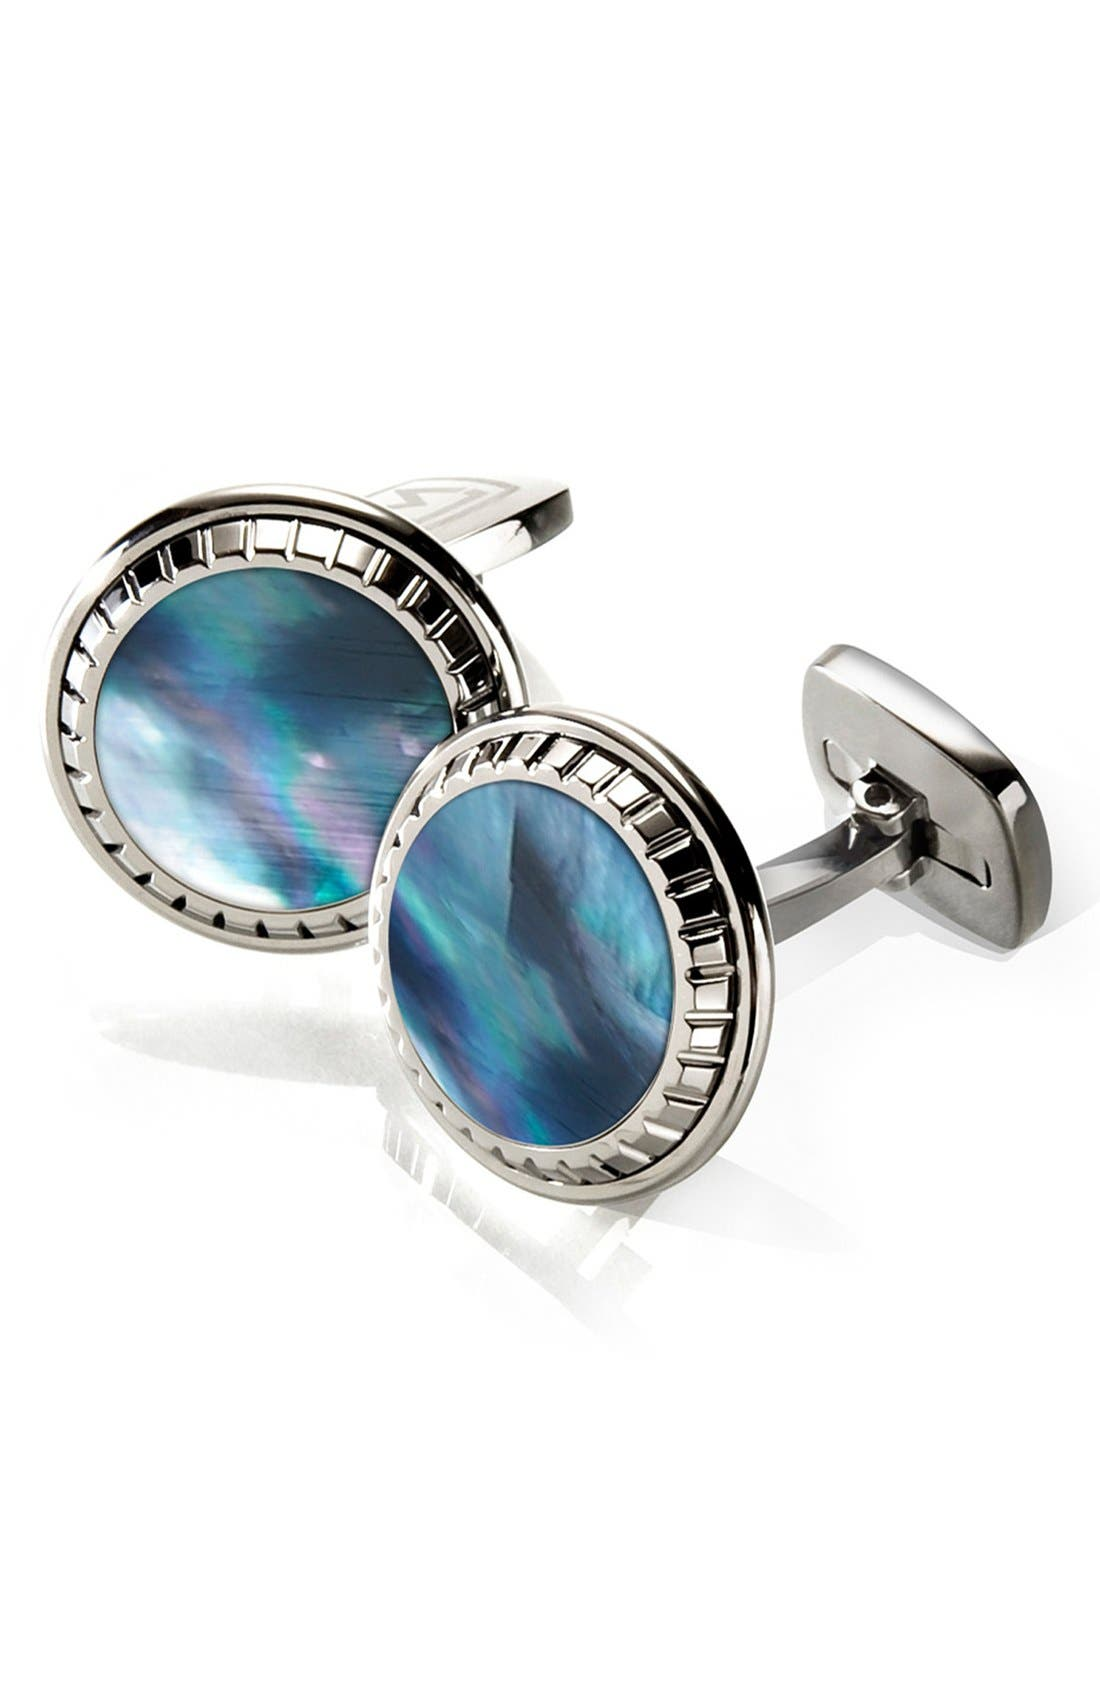 Main Image - M-Clip® Stainless Steel Cuff Links